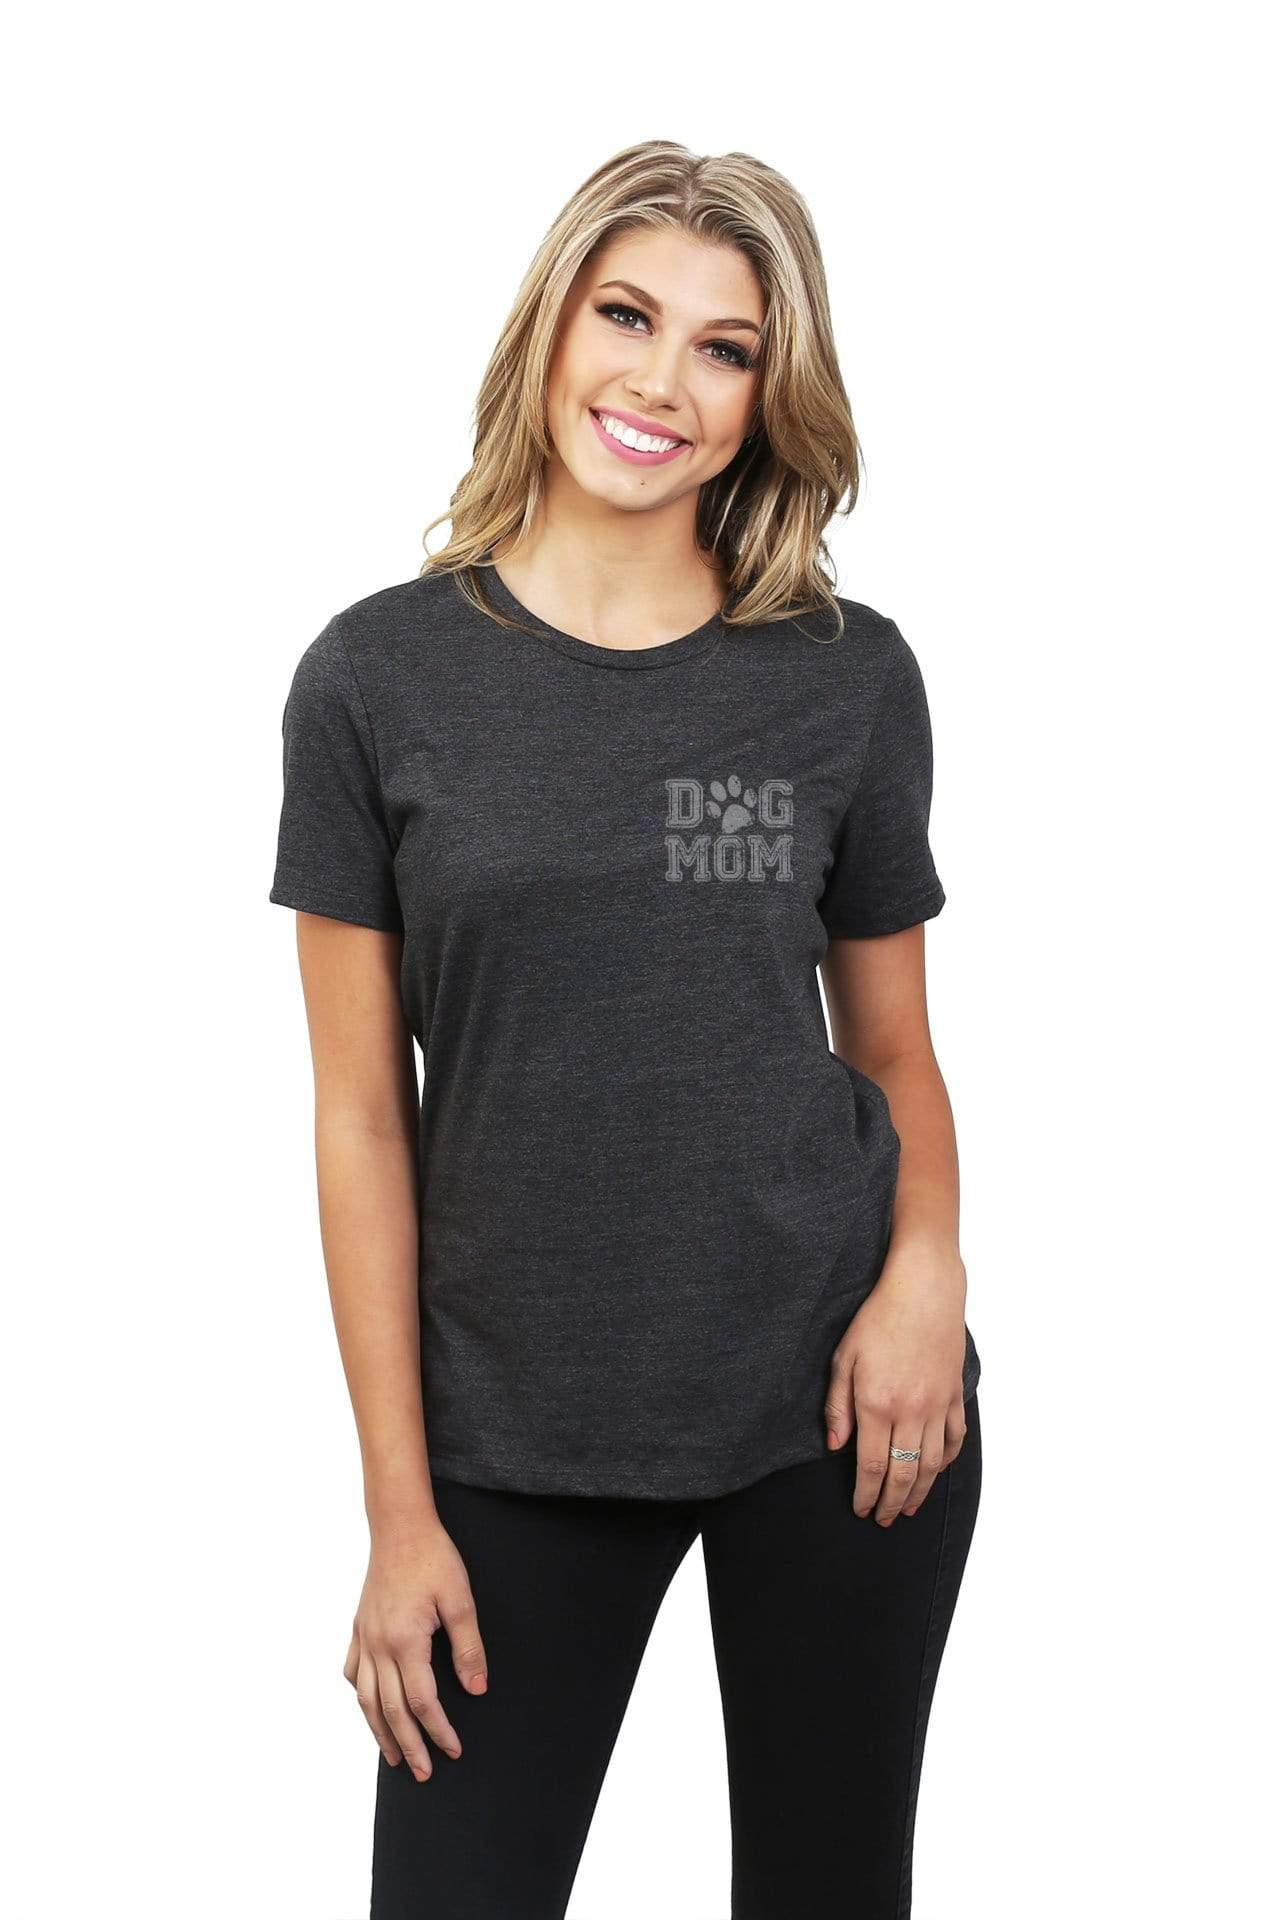 Dog Mom - Thread Tank | Stories You Can Wear | T-Shirts, Tank Tops and Sweatshirts